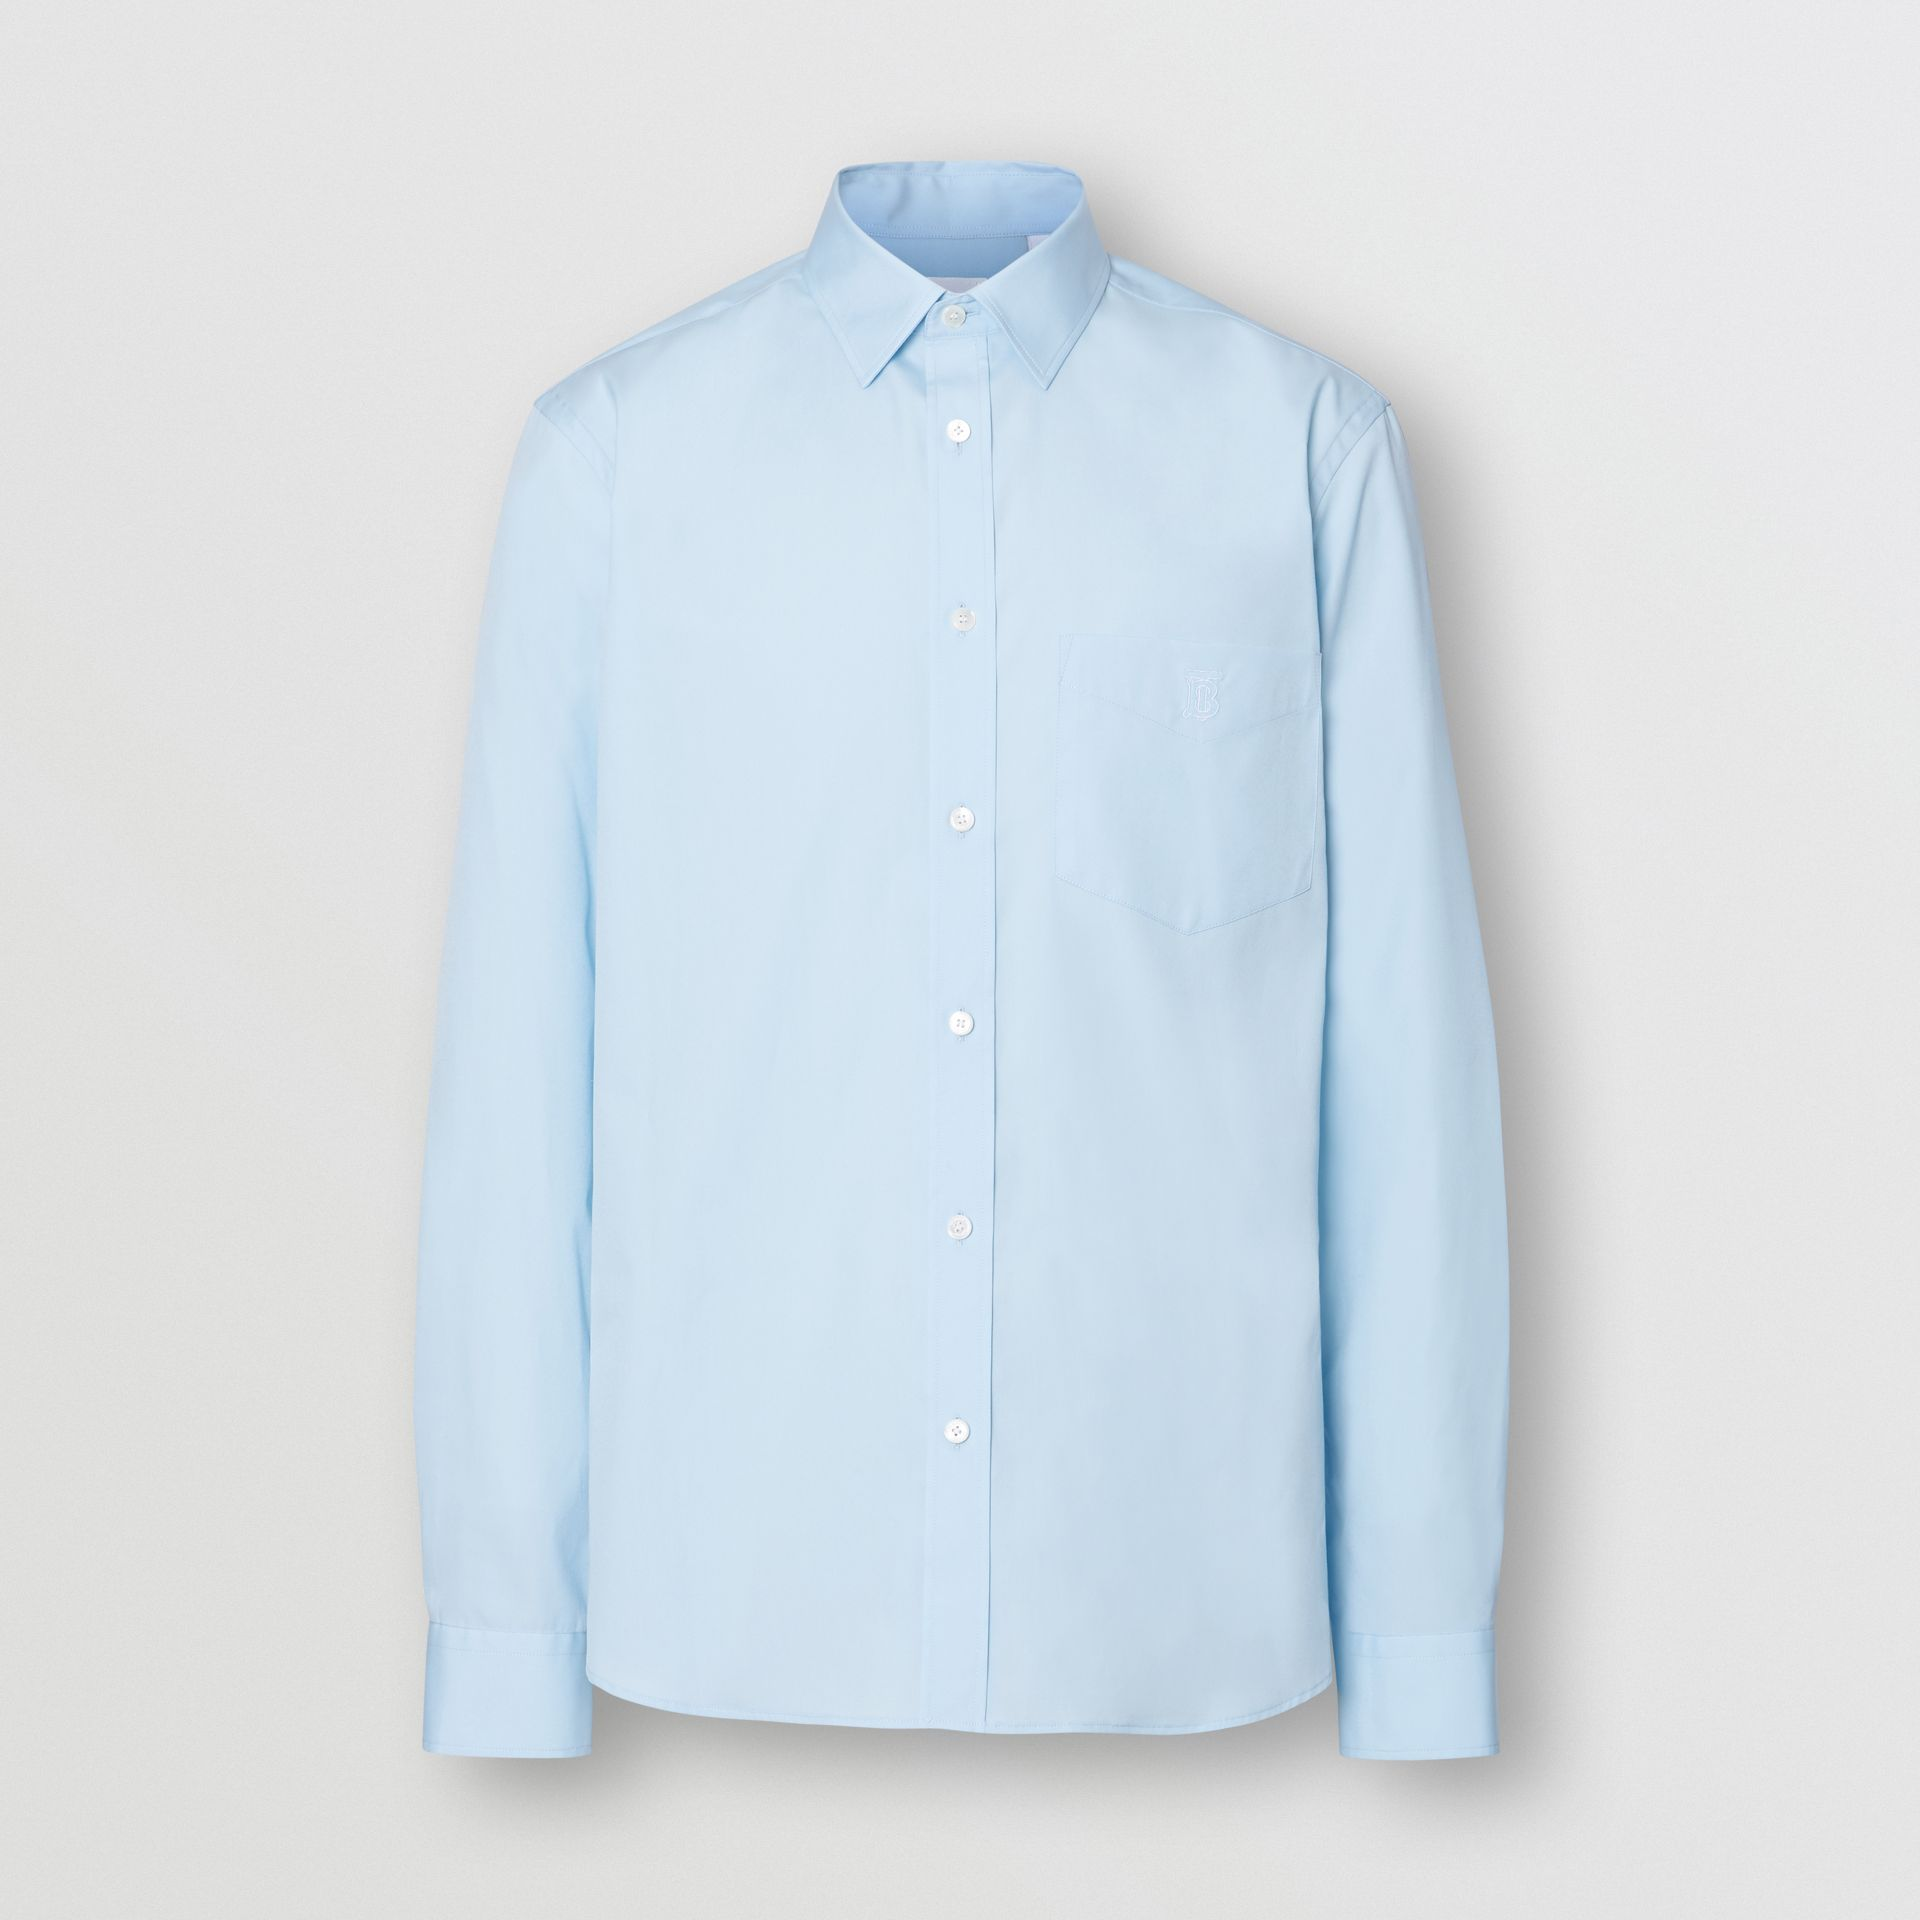 Monogram Motif Stretch Cotton Poplin Shirt in Pale Blue - Men | Burberry - gallery image 3